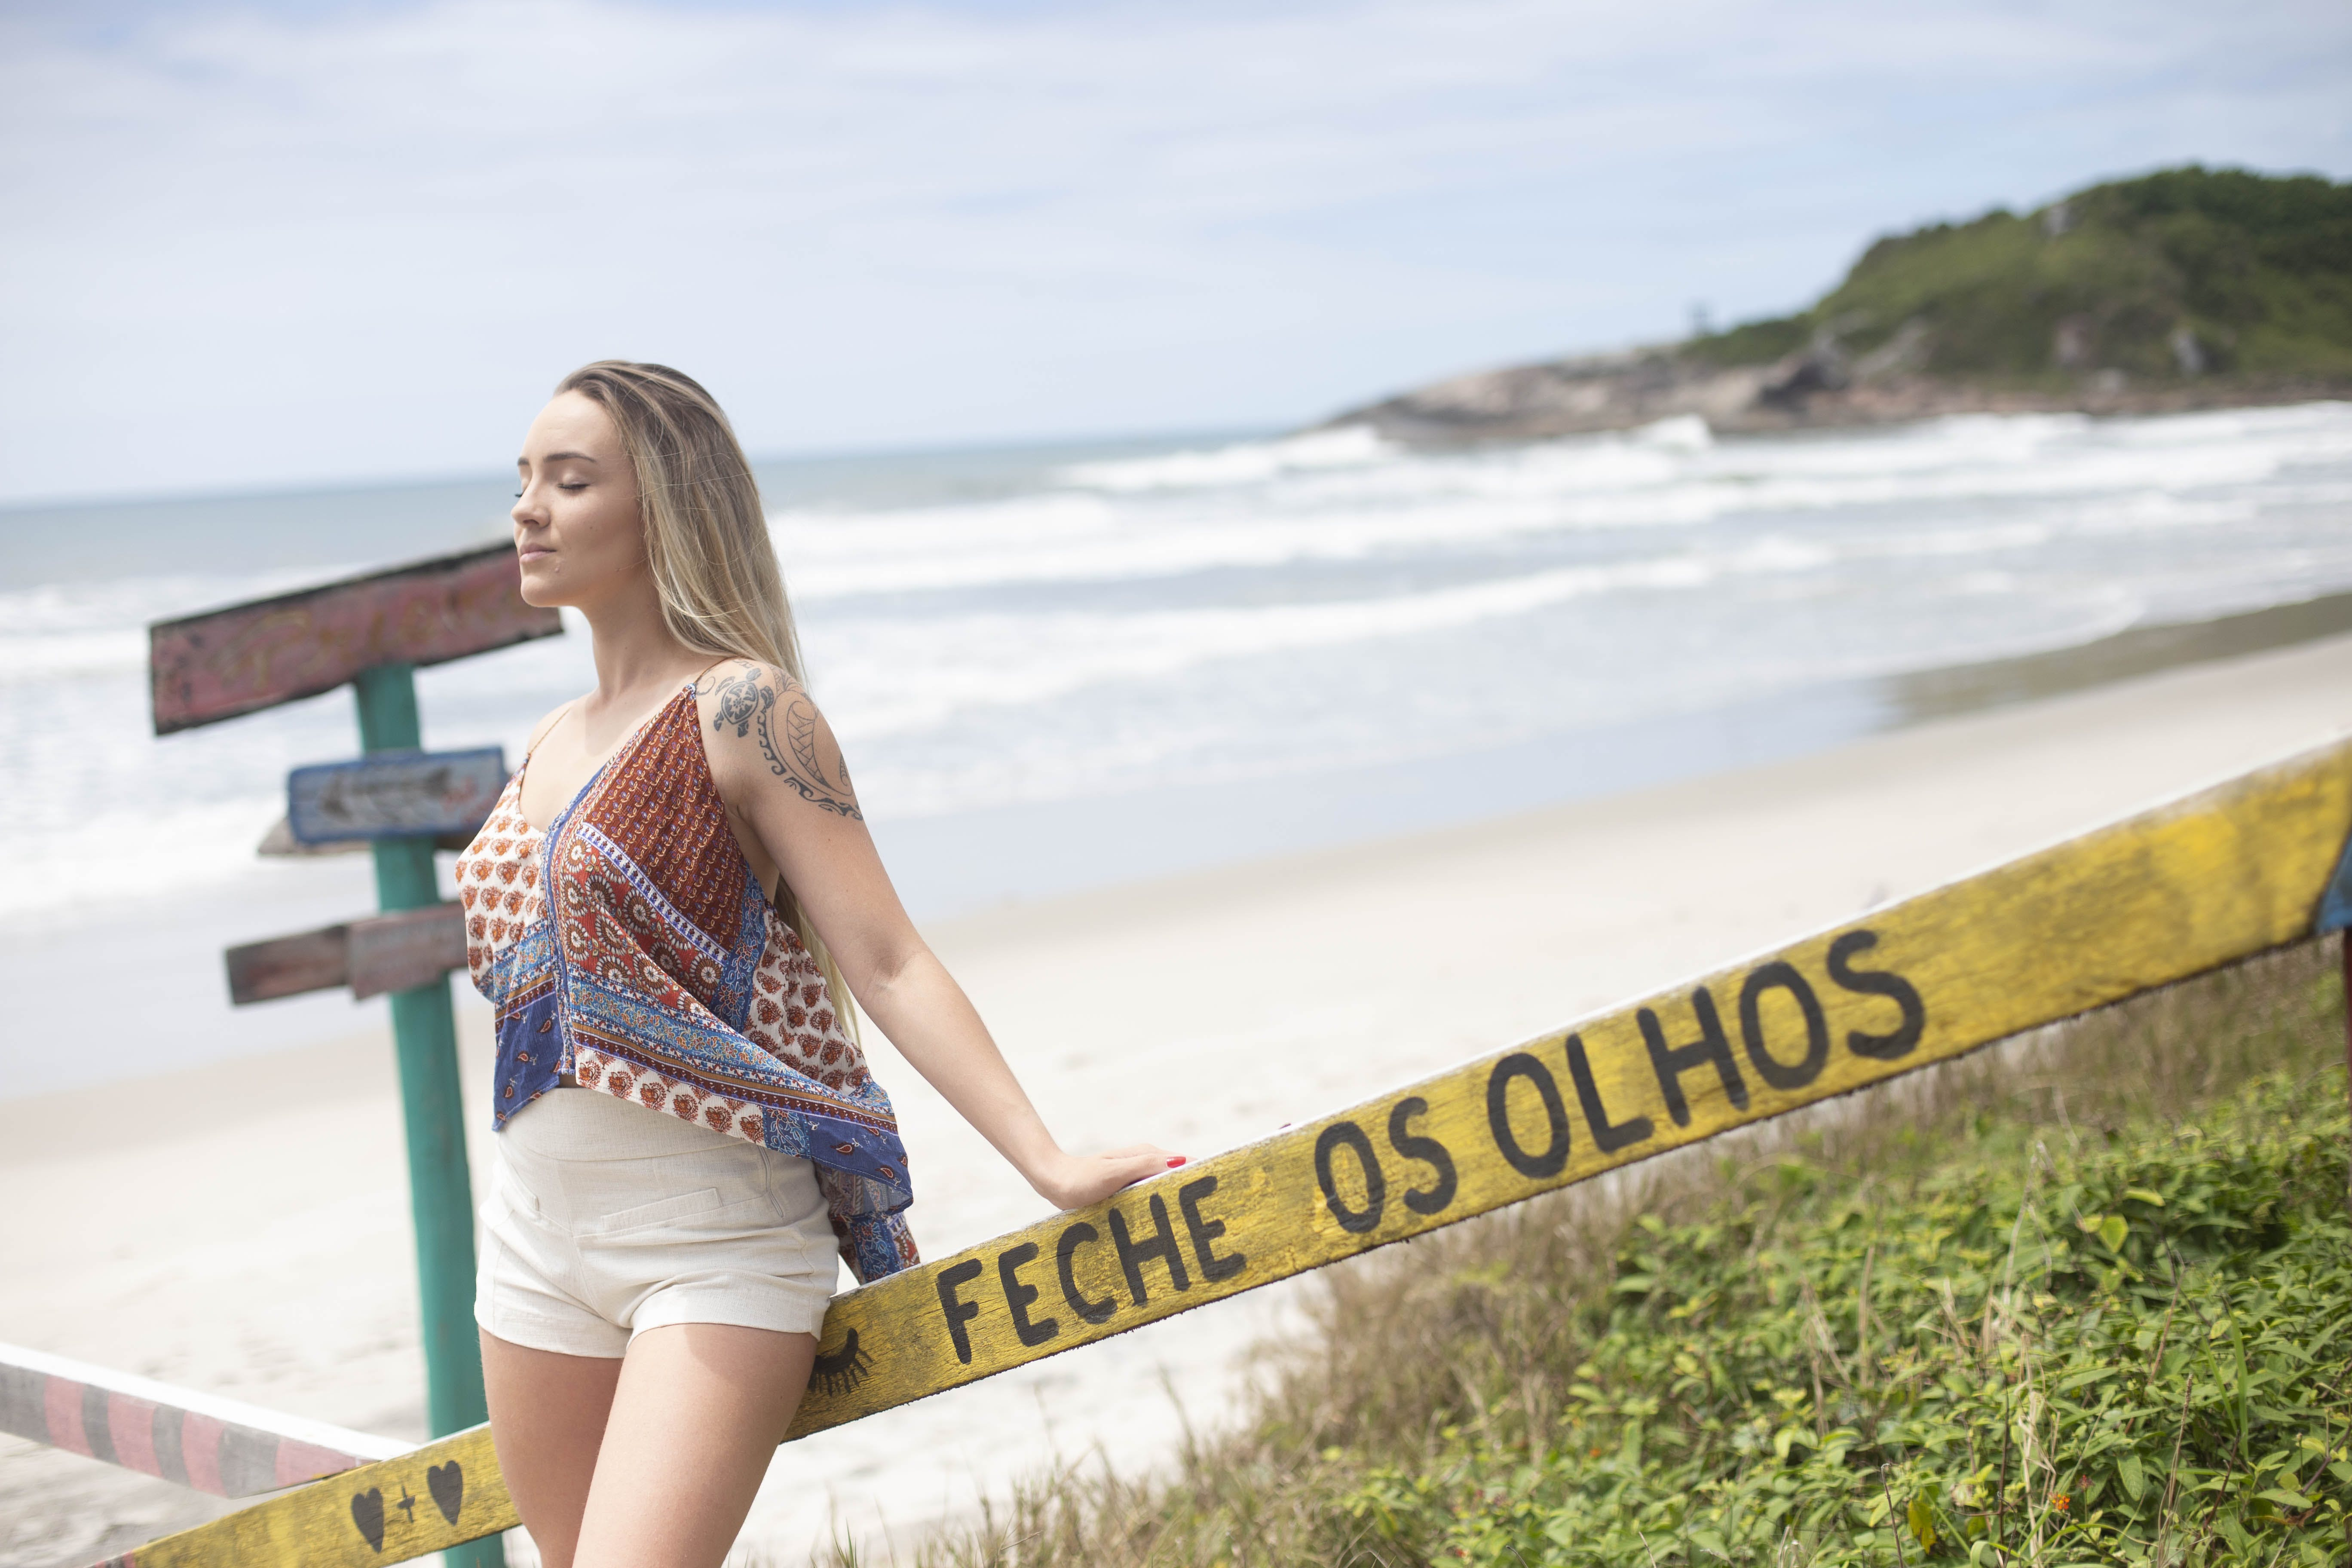 Woman Standing Beside Feche Os Olhos Signage